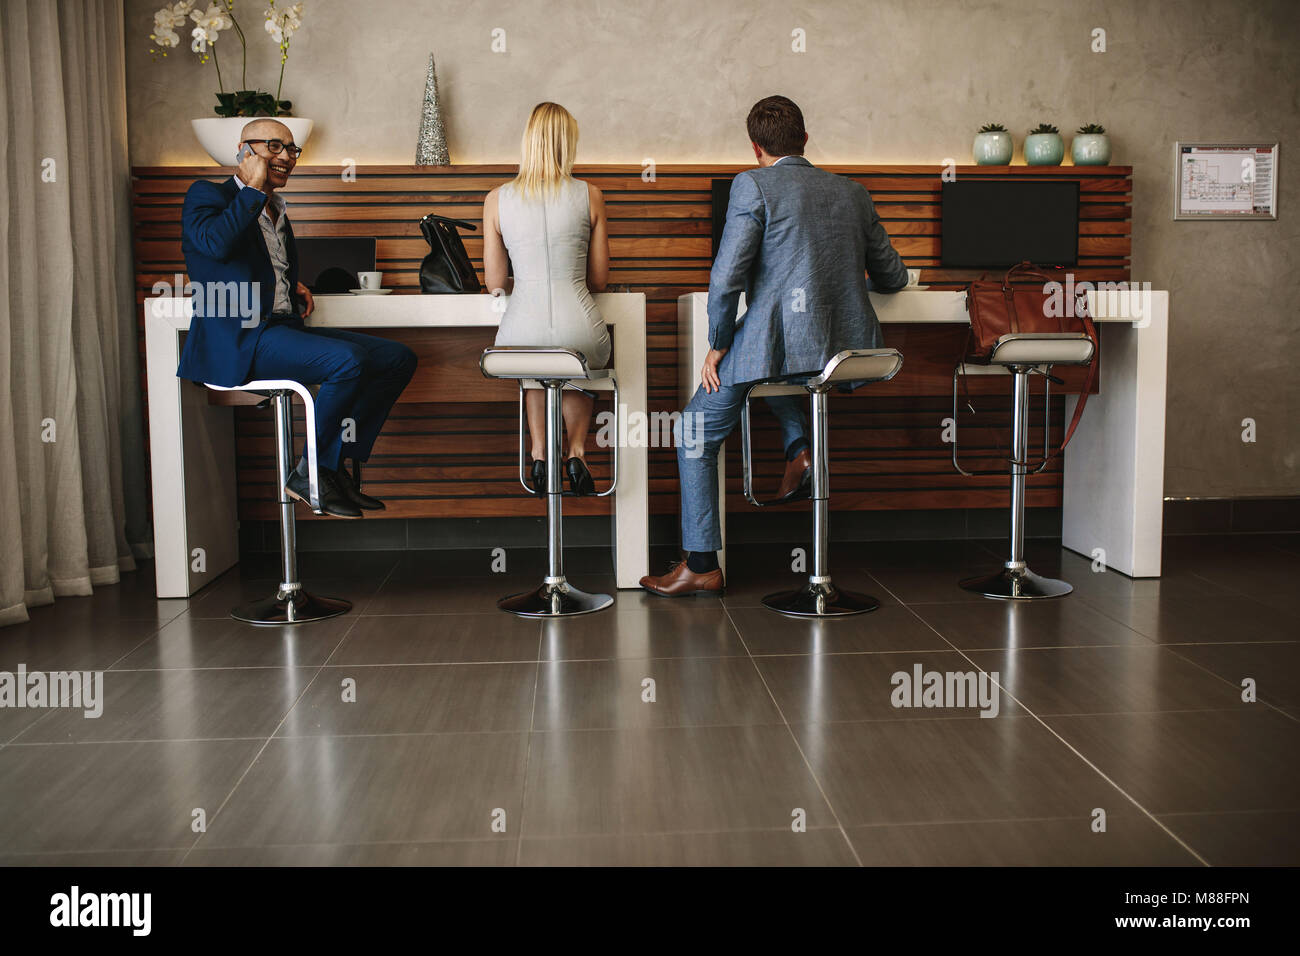 Rear view shot of travelers sitting at free internet service counter in airport. People at cyber corner in airport - Stock Image